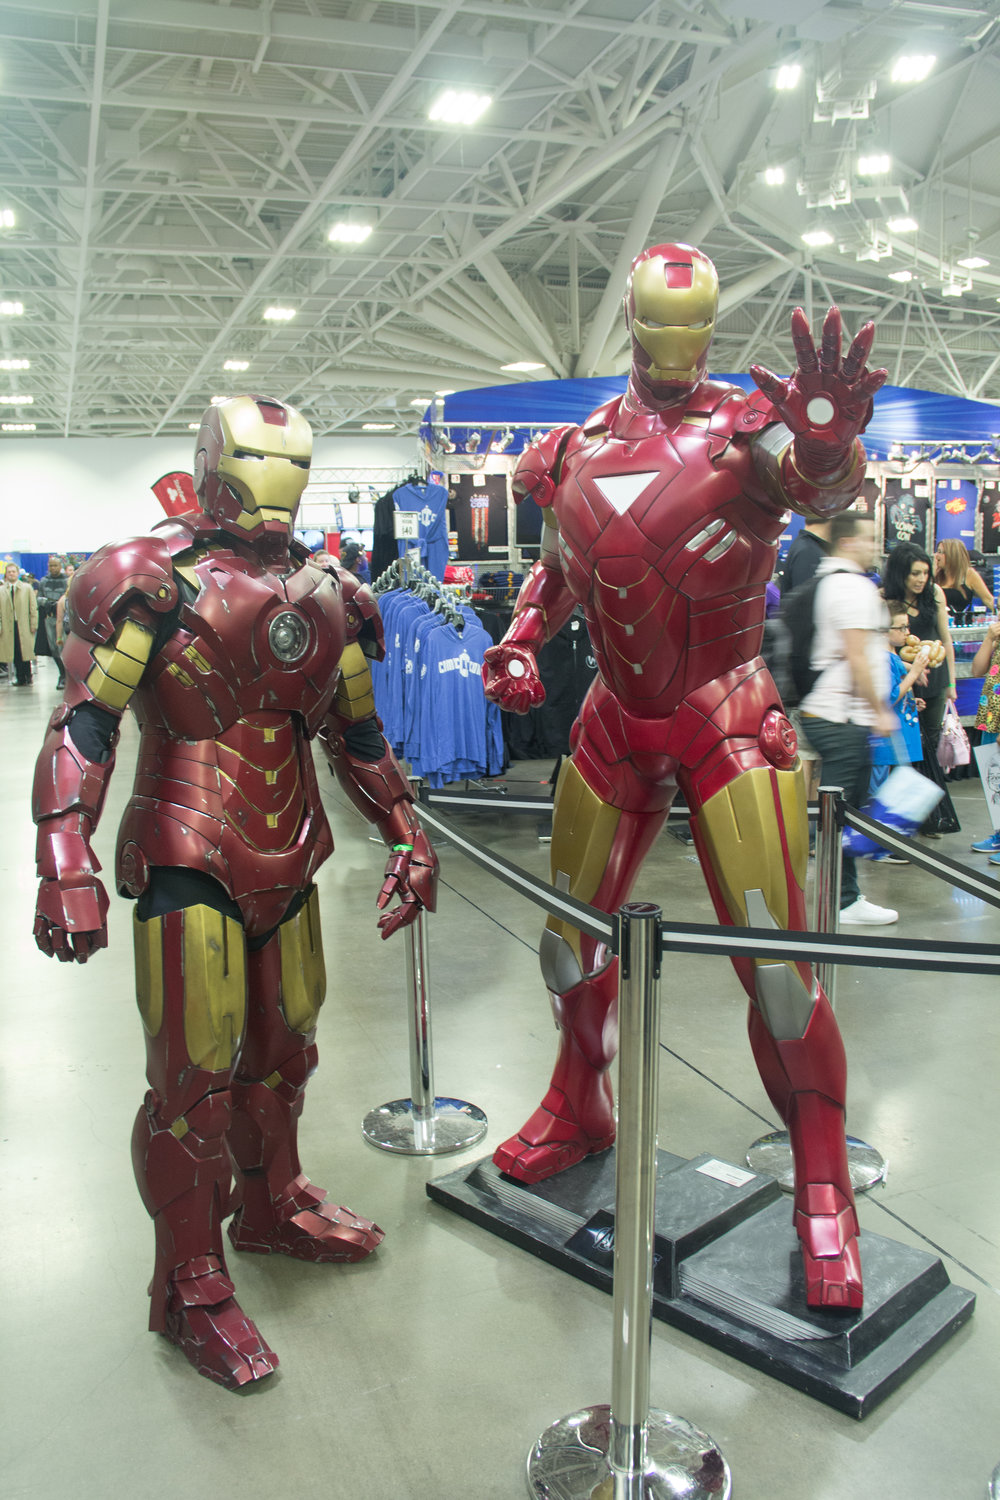 Iron Man, meet Iron Man